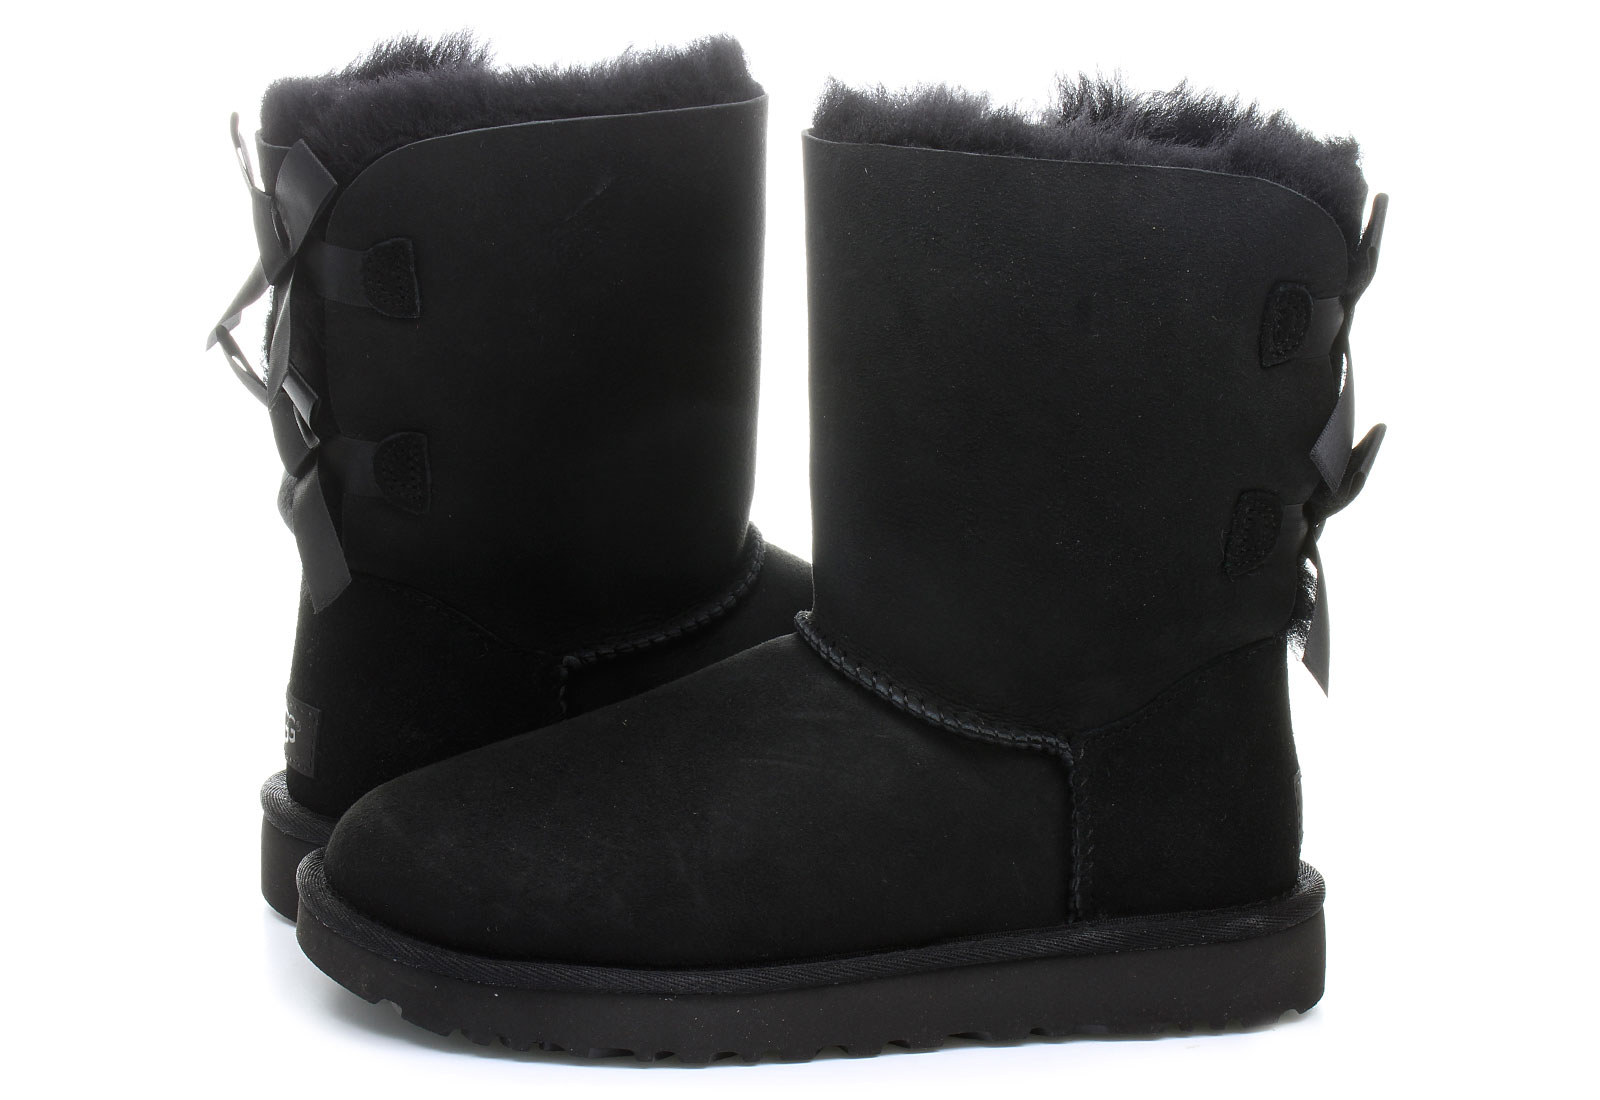 b369ae83e13e Ugg Boots - Bailey Bow Ii - 1016225-BLK - Online shop for sneakers ...